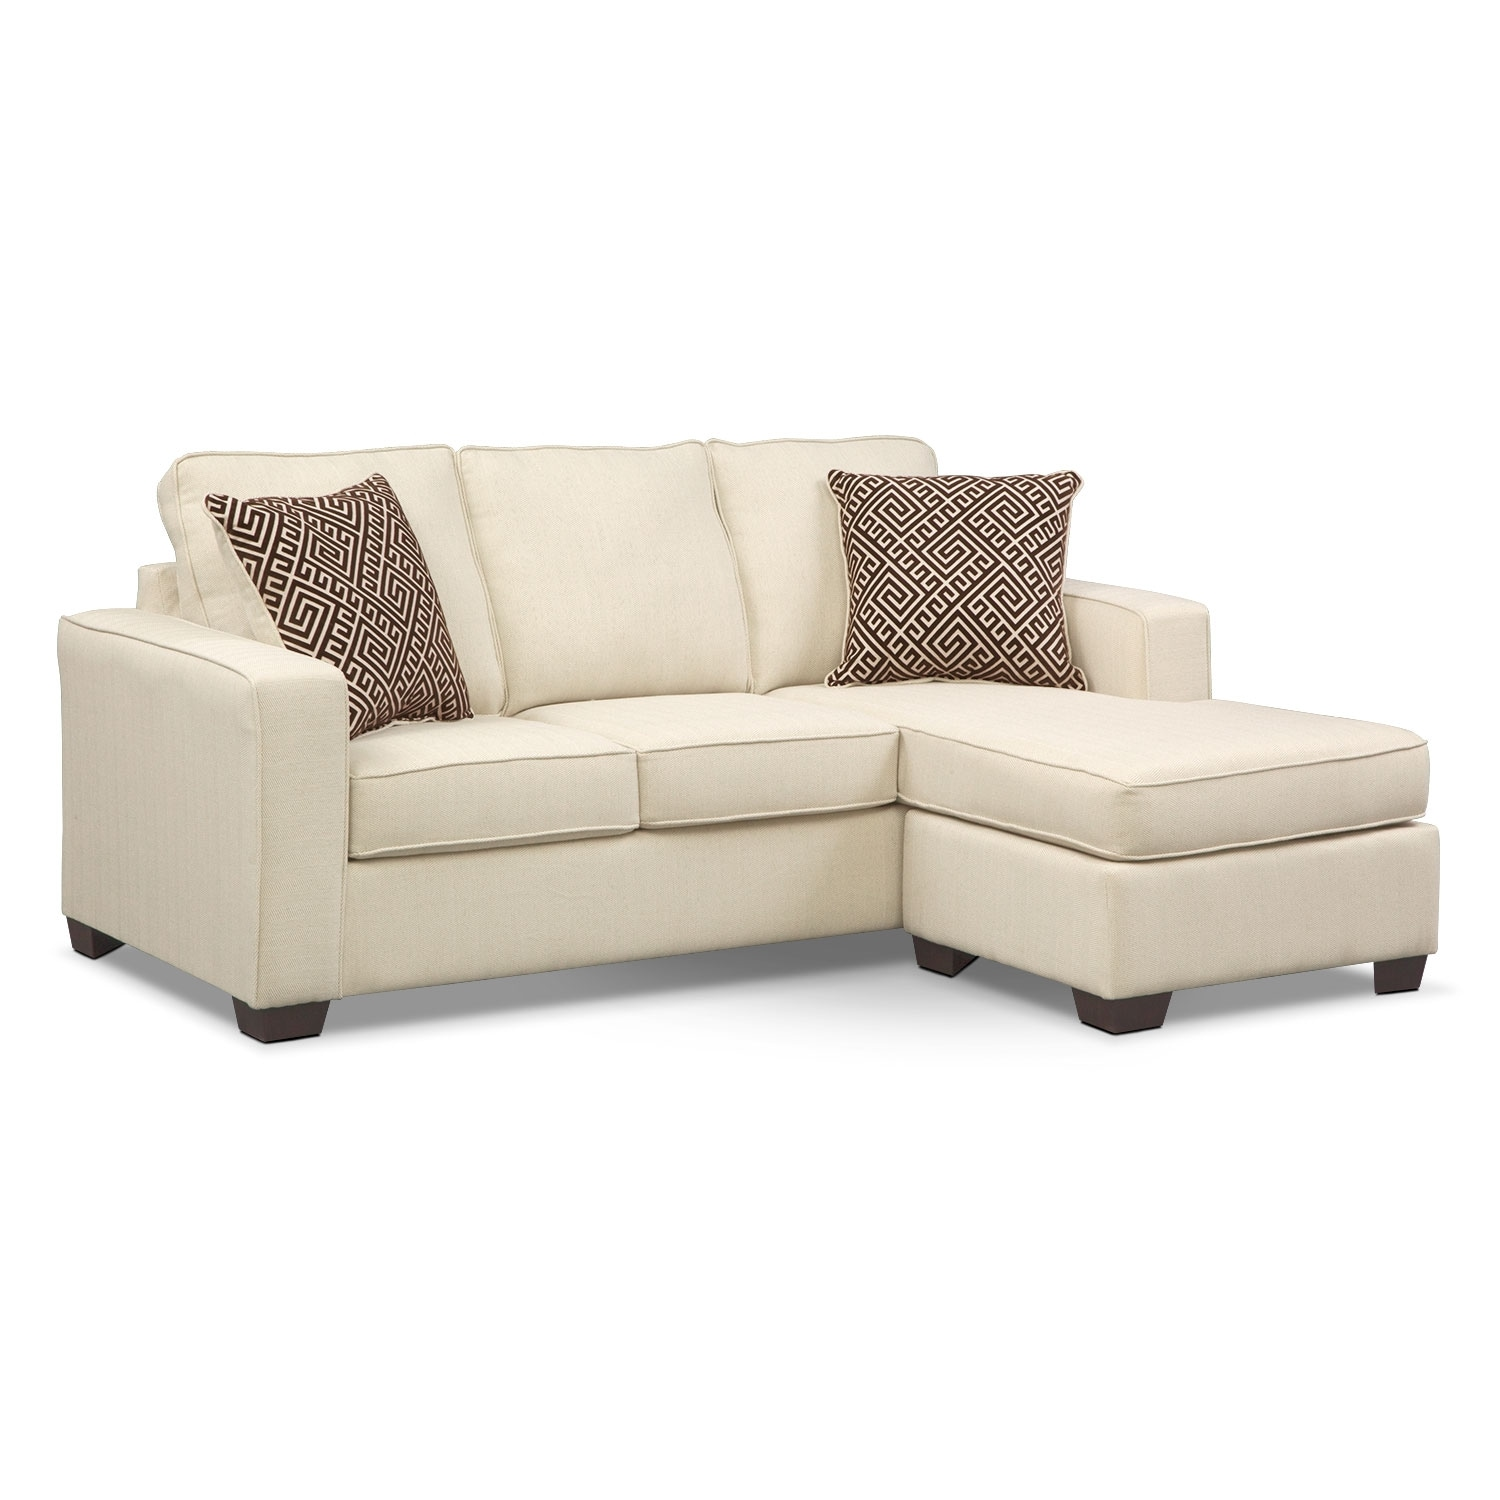 Sterling beige queen memory foam sleeper sofa w chaise for Chaise lounge couch